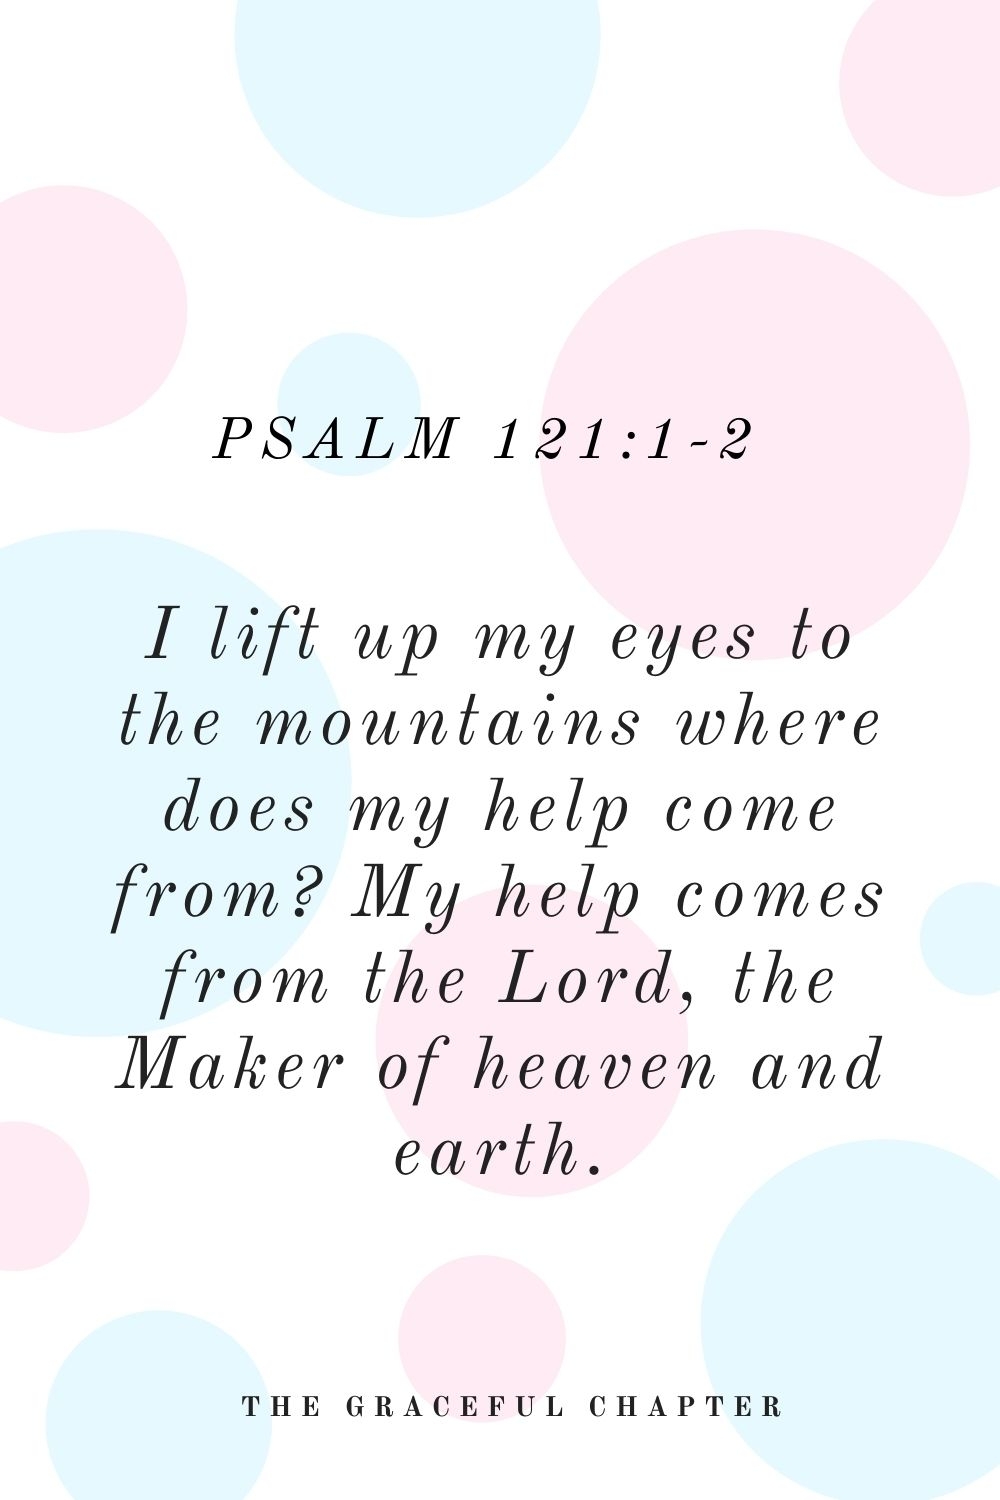 I lift up my eyes to the mountains where does my help come from? My help comes from the Lord, the Maker of heaven and earth Psalm 121:1-2